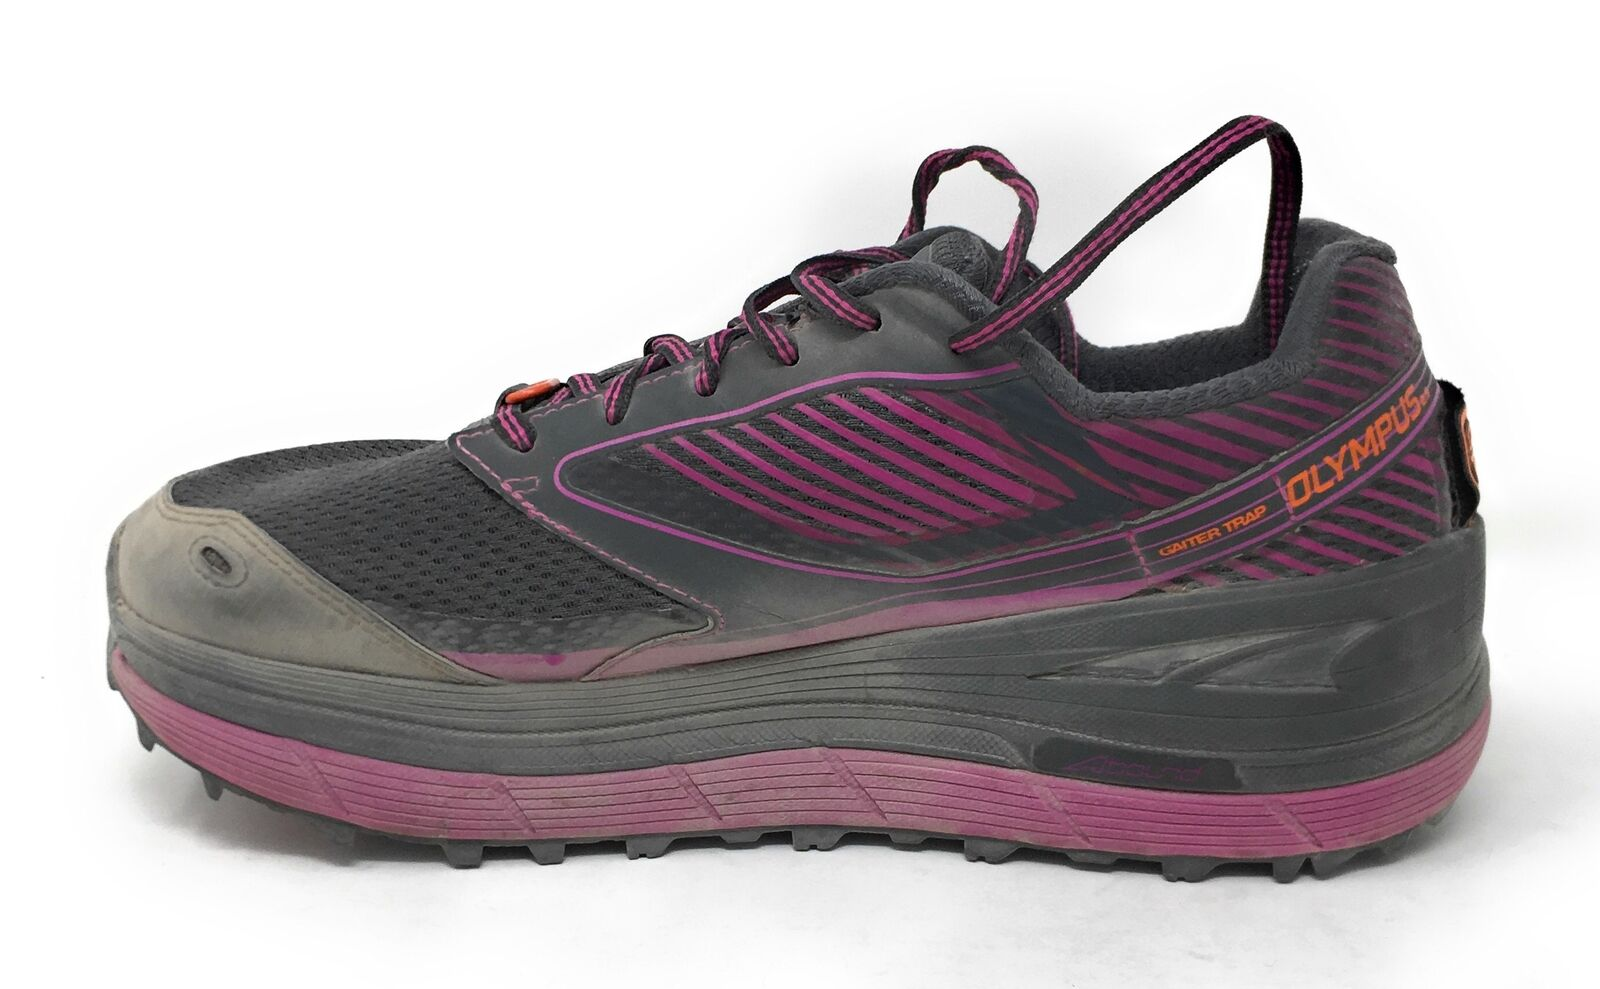 Altra Women's Olympus 2.5 Trail Running shoes, Purple - 8.5 B(M) US - USED